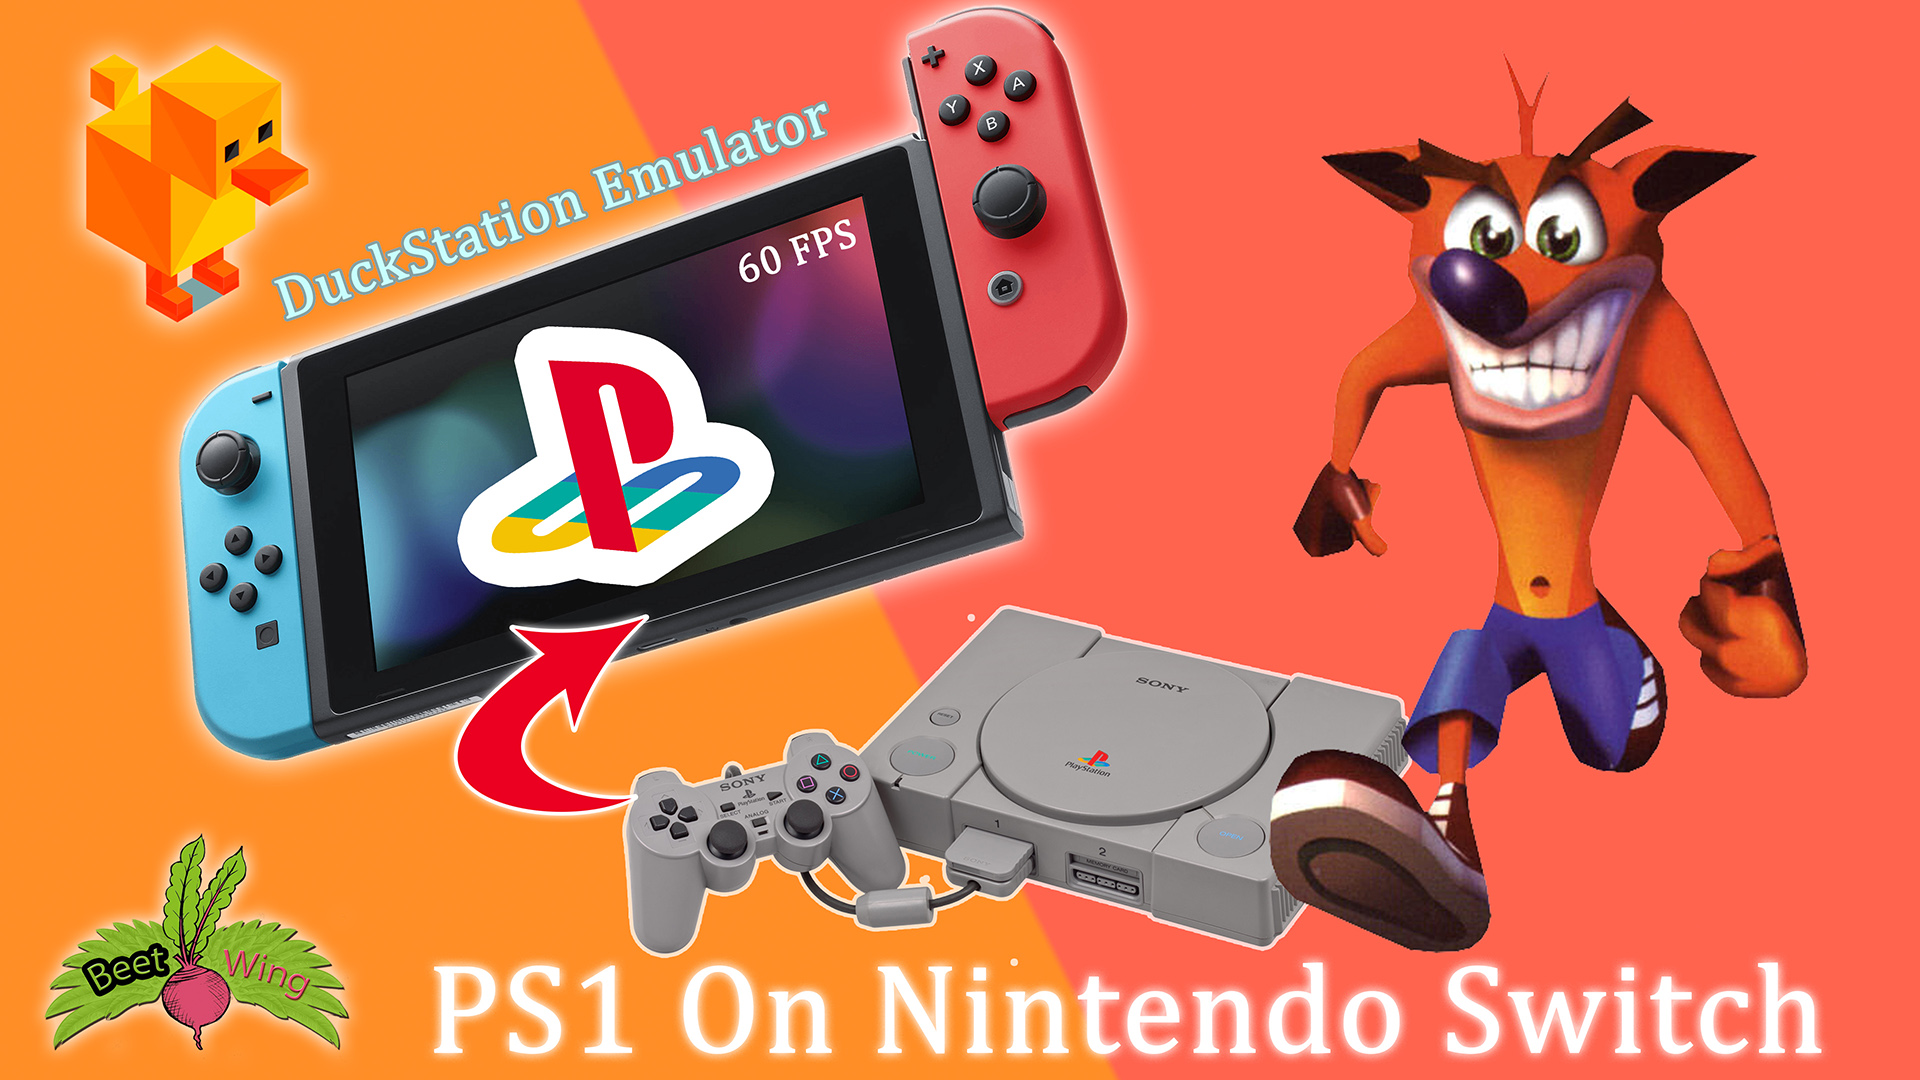 PS1 on Nintendo Switch